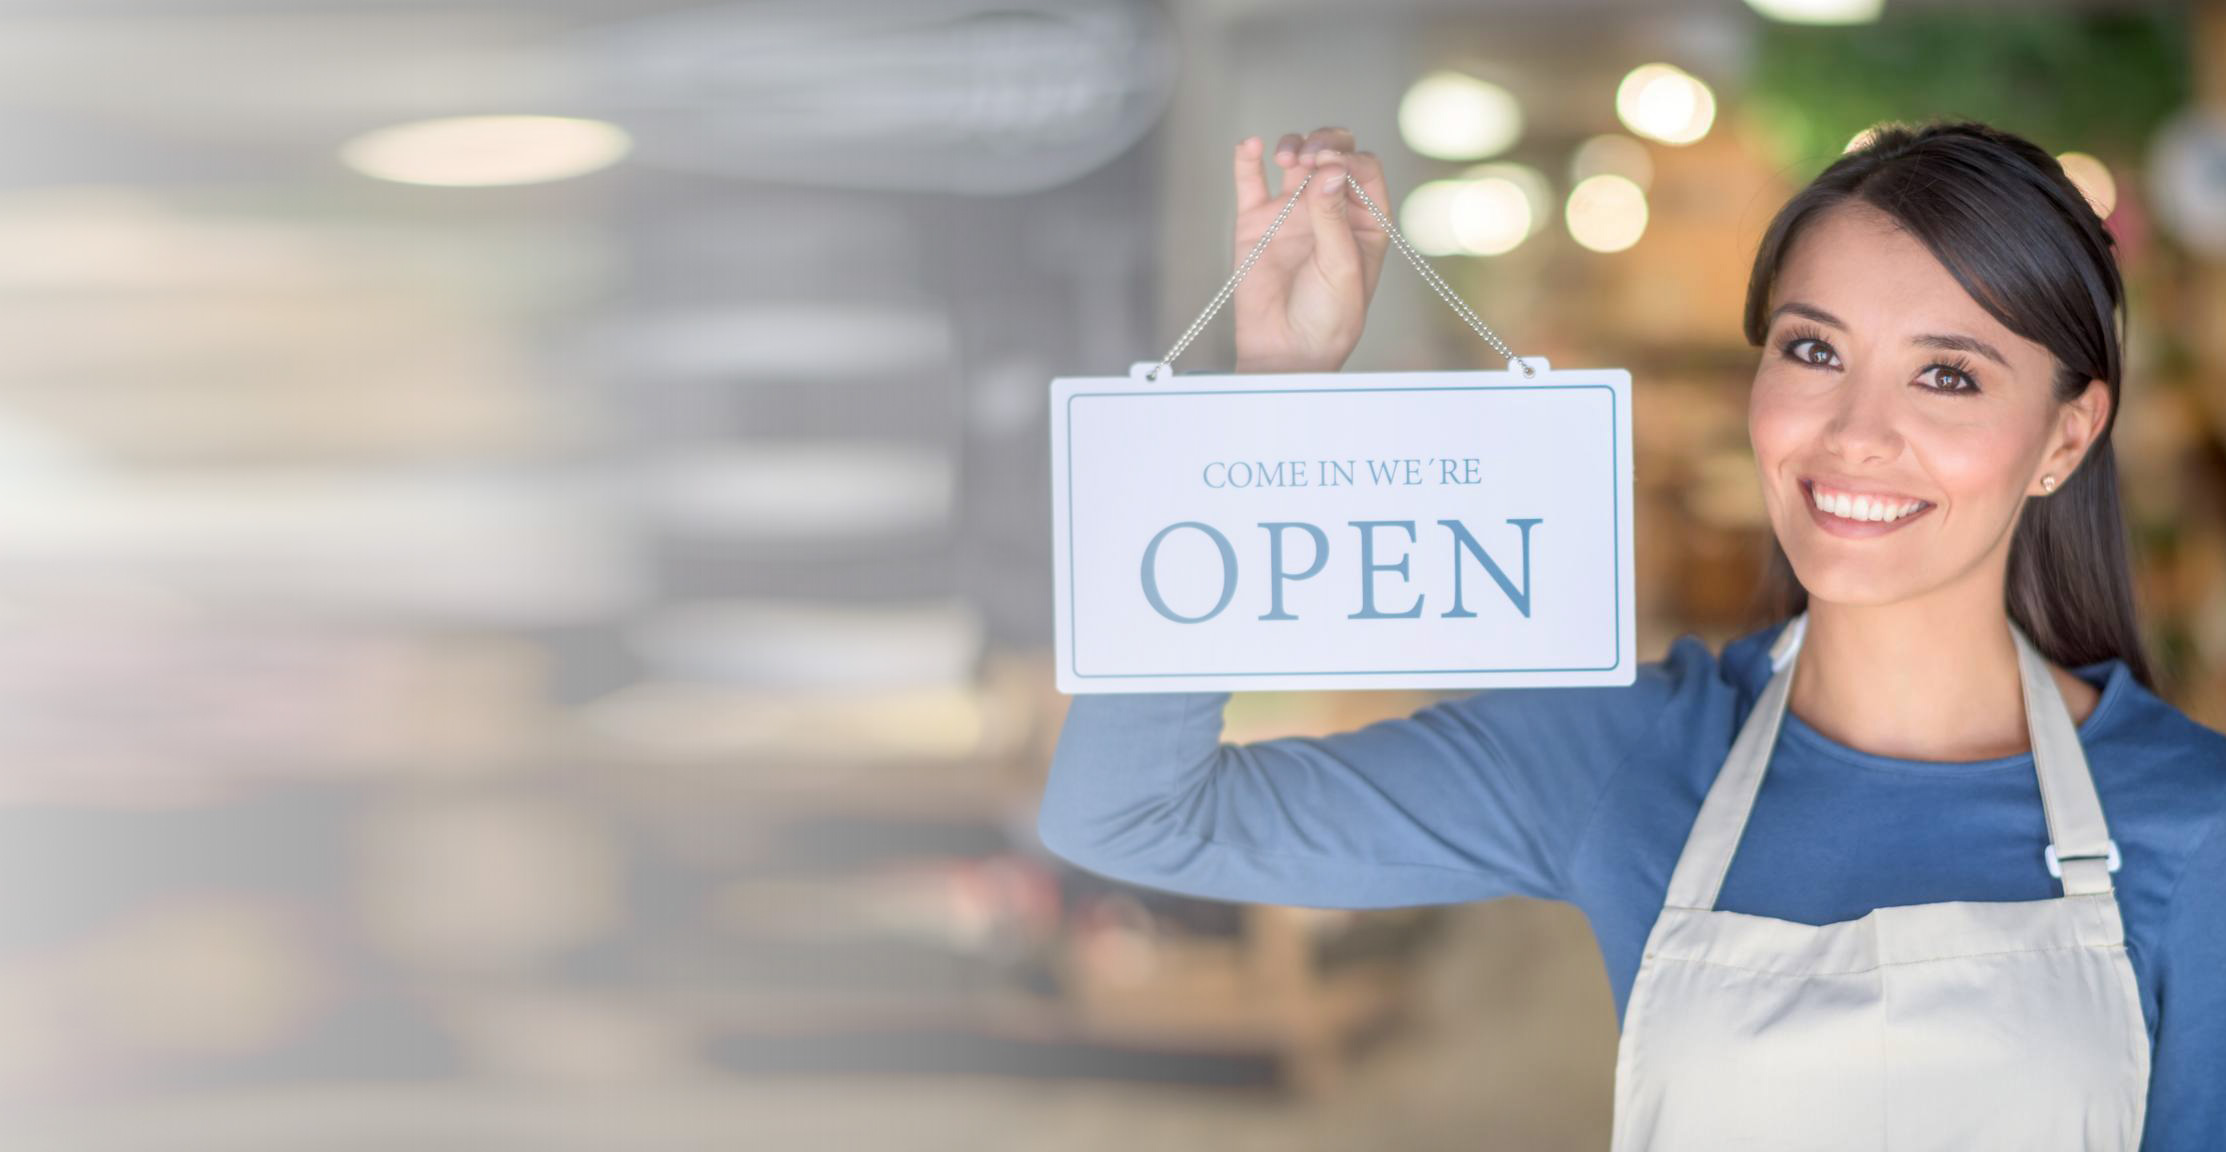 Women Entrepreneur in Small Business with Open sign